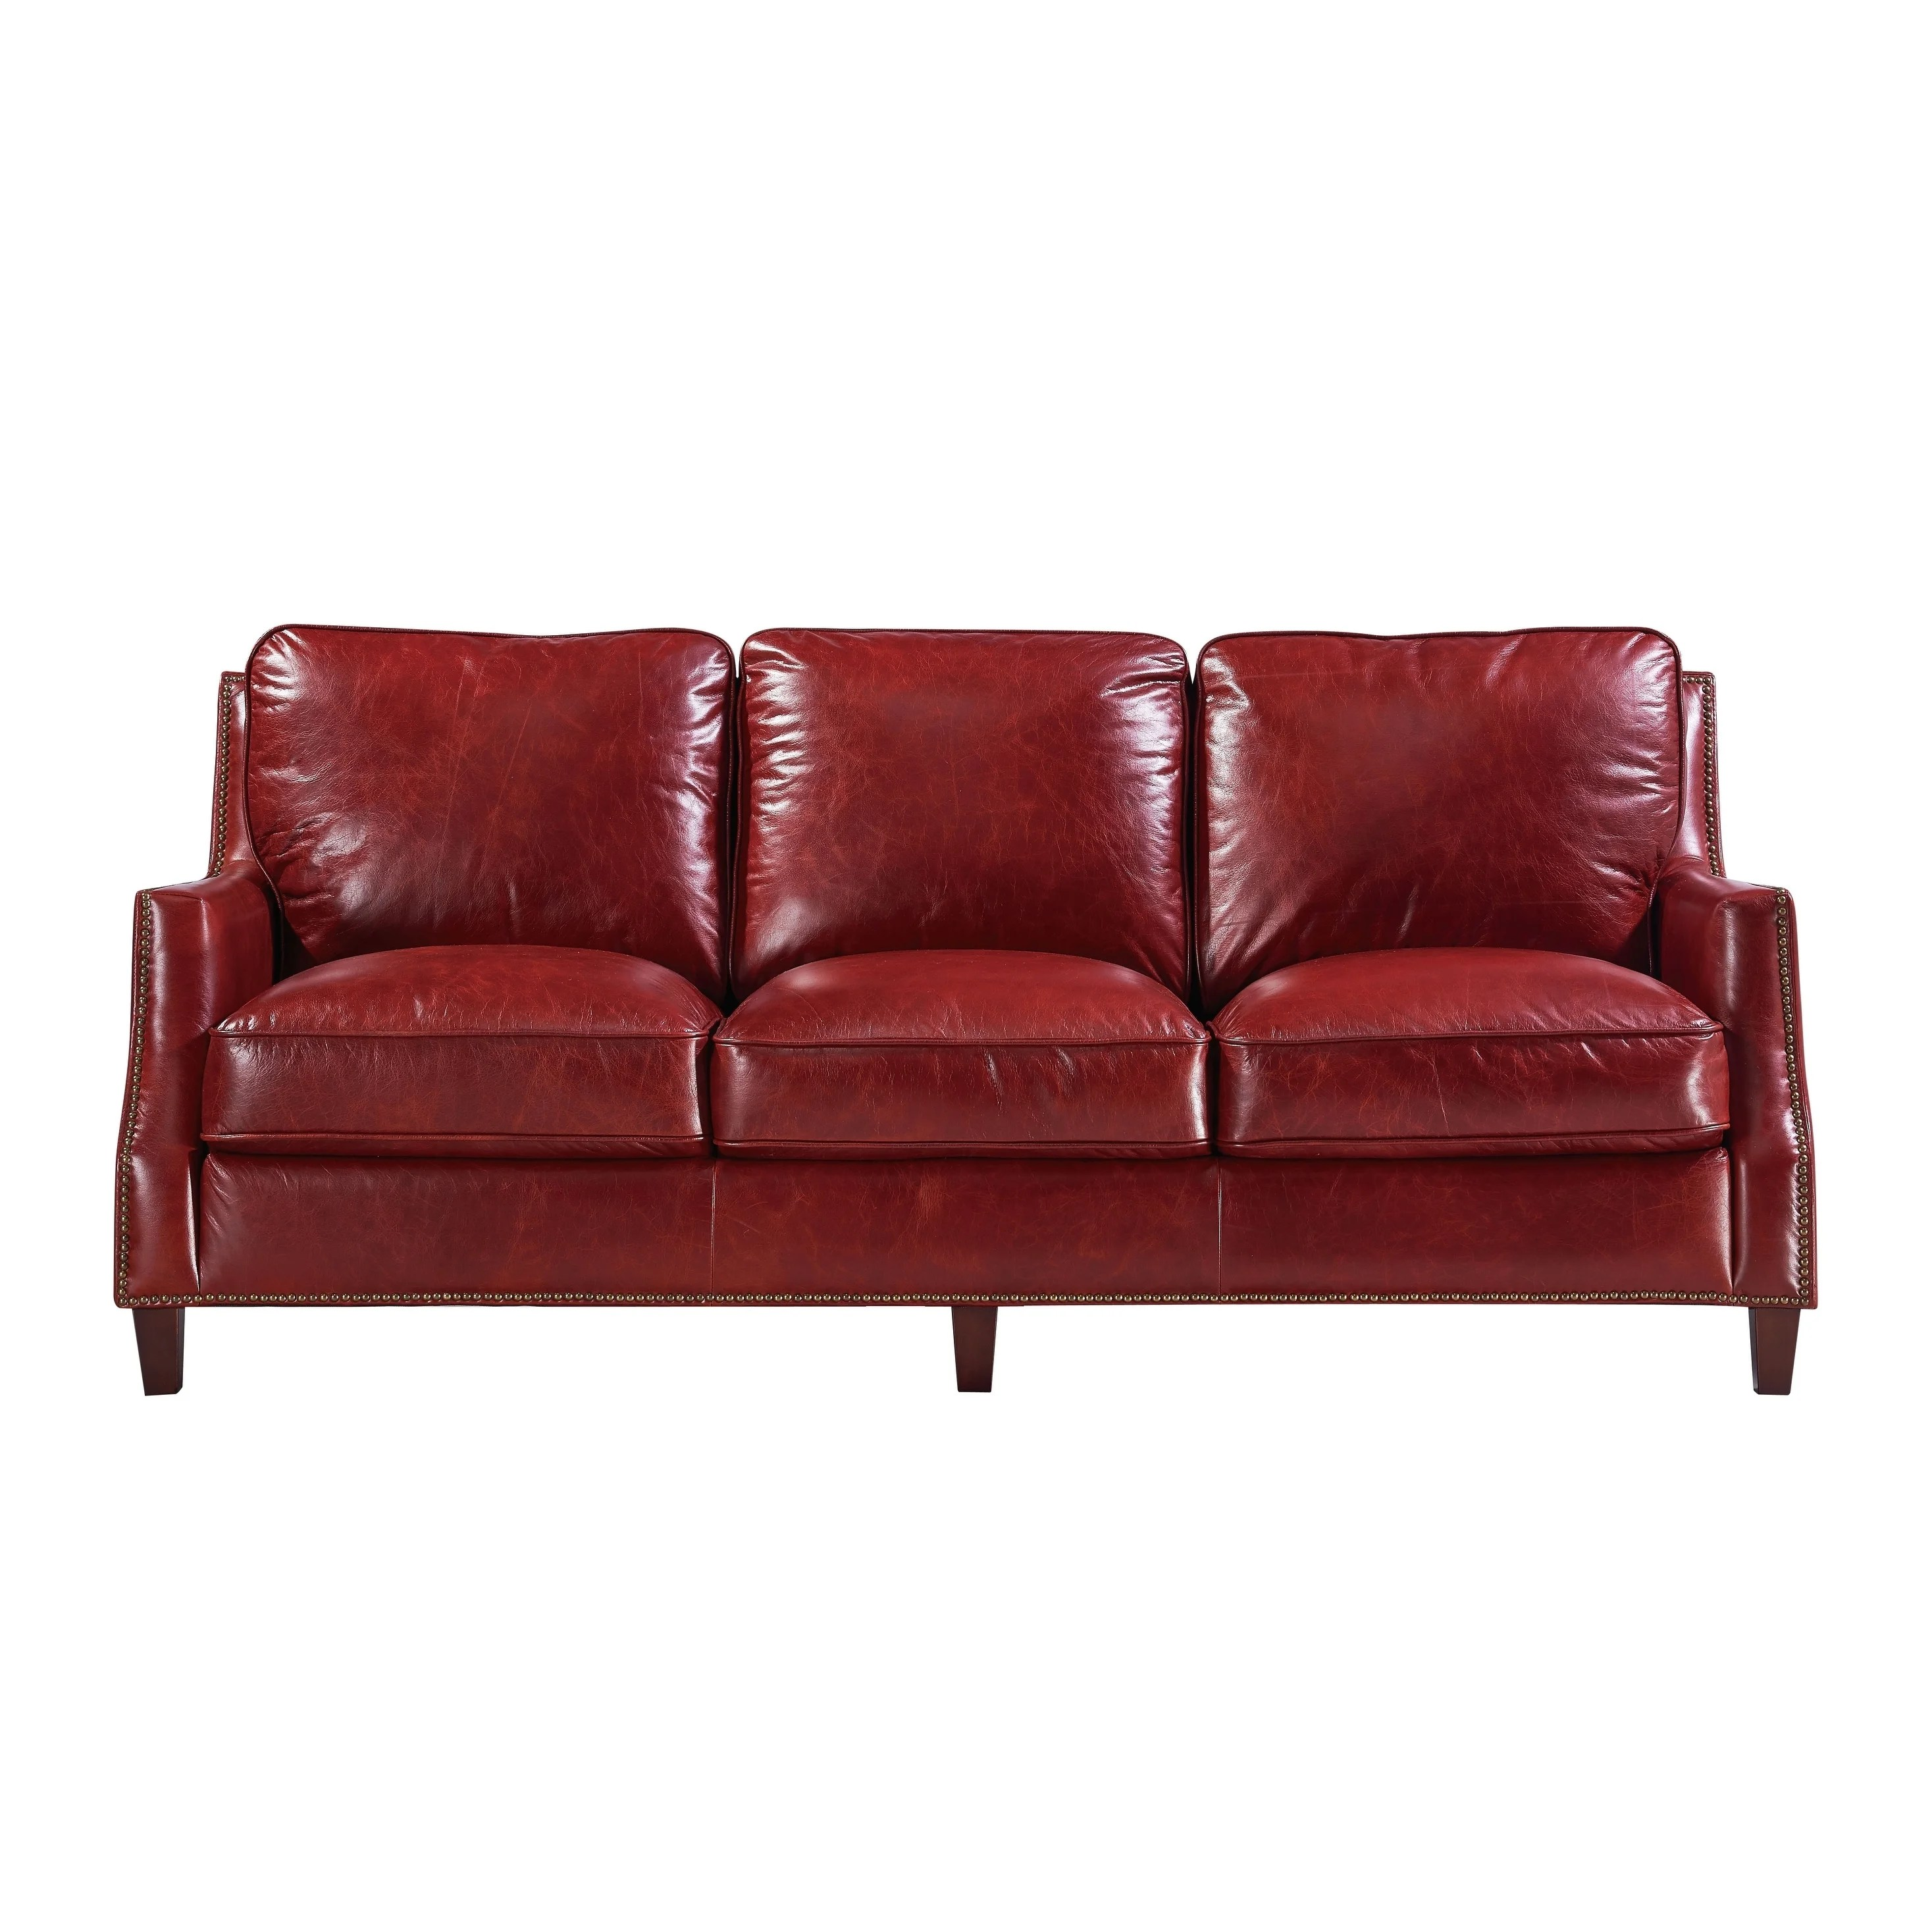 Bonded Leather Sofa Sale | Furniture Comfy Corner Couch For Home ...